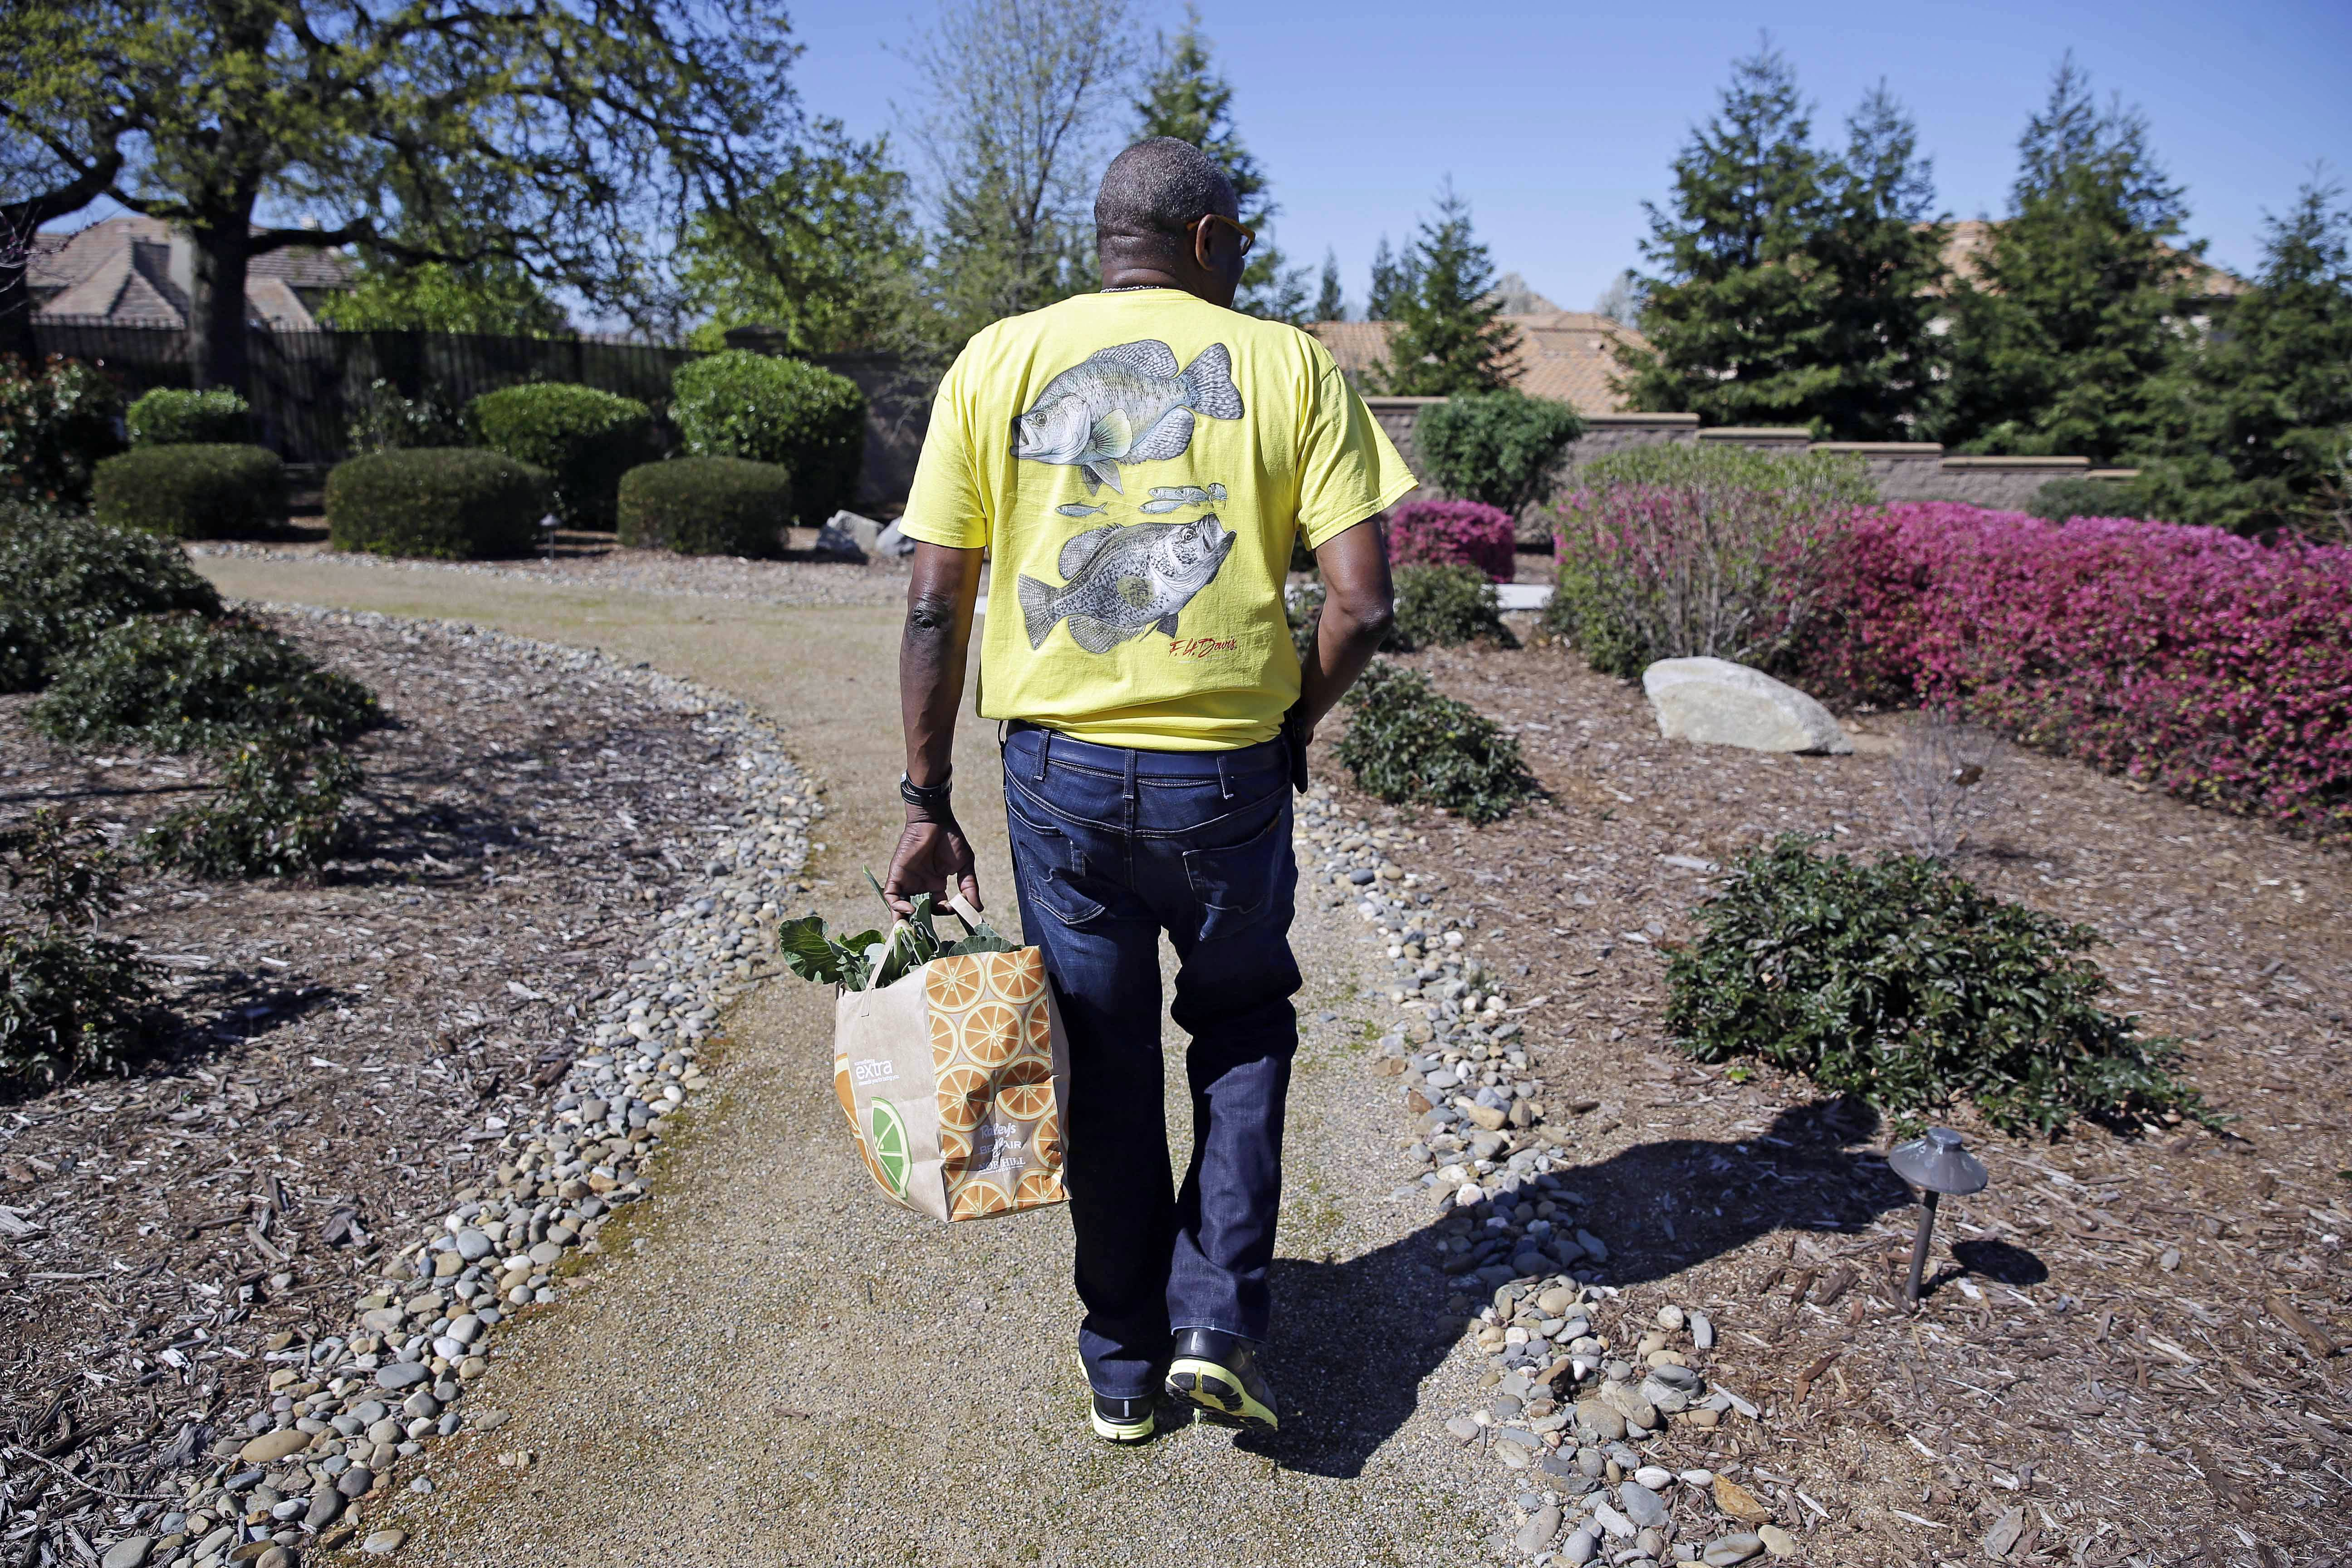 In this March 13, 2014 photo, Dusty Baker carries a bag of greens he just cut while walking through the yard at his home in Granite Bay, Calif. While his former players and fellow managers are busy preparing for opening day, Baker is busy tending to his crops, planning his next plantings and minding his vineyard and the several hybrid fruit trees that border it. Out of uniform for the first time since taking 2007 off between managerial jobs with the Cubs and Reds, Baker is not slowing down much from his pressure-packed days in the dugout.